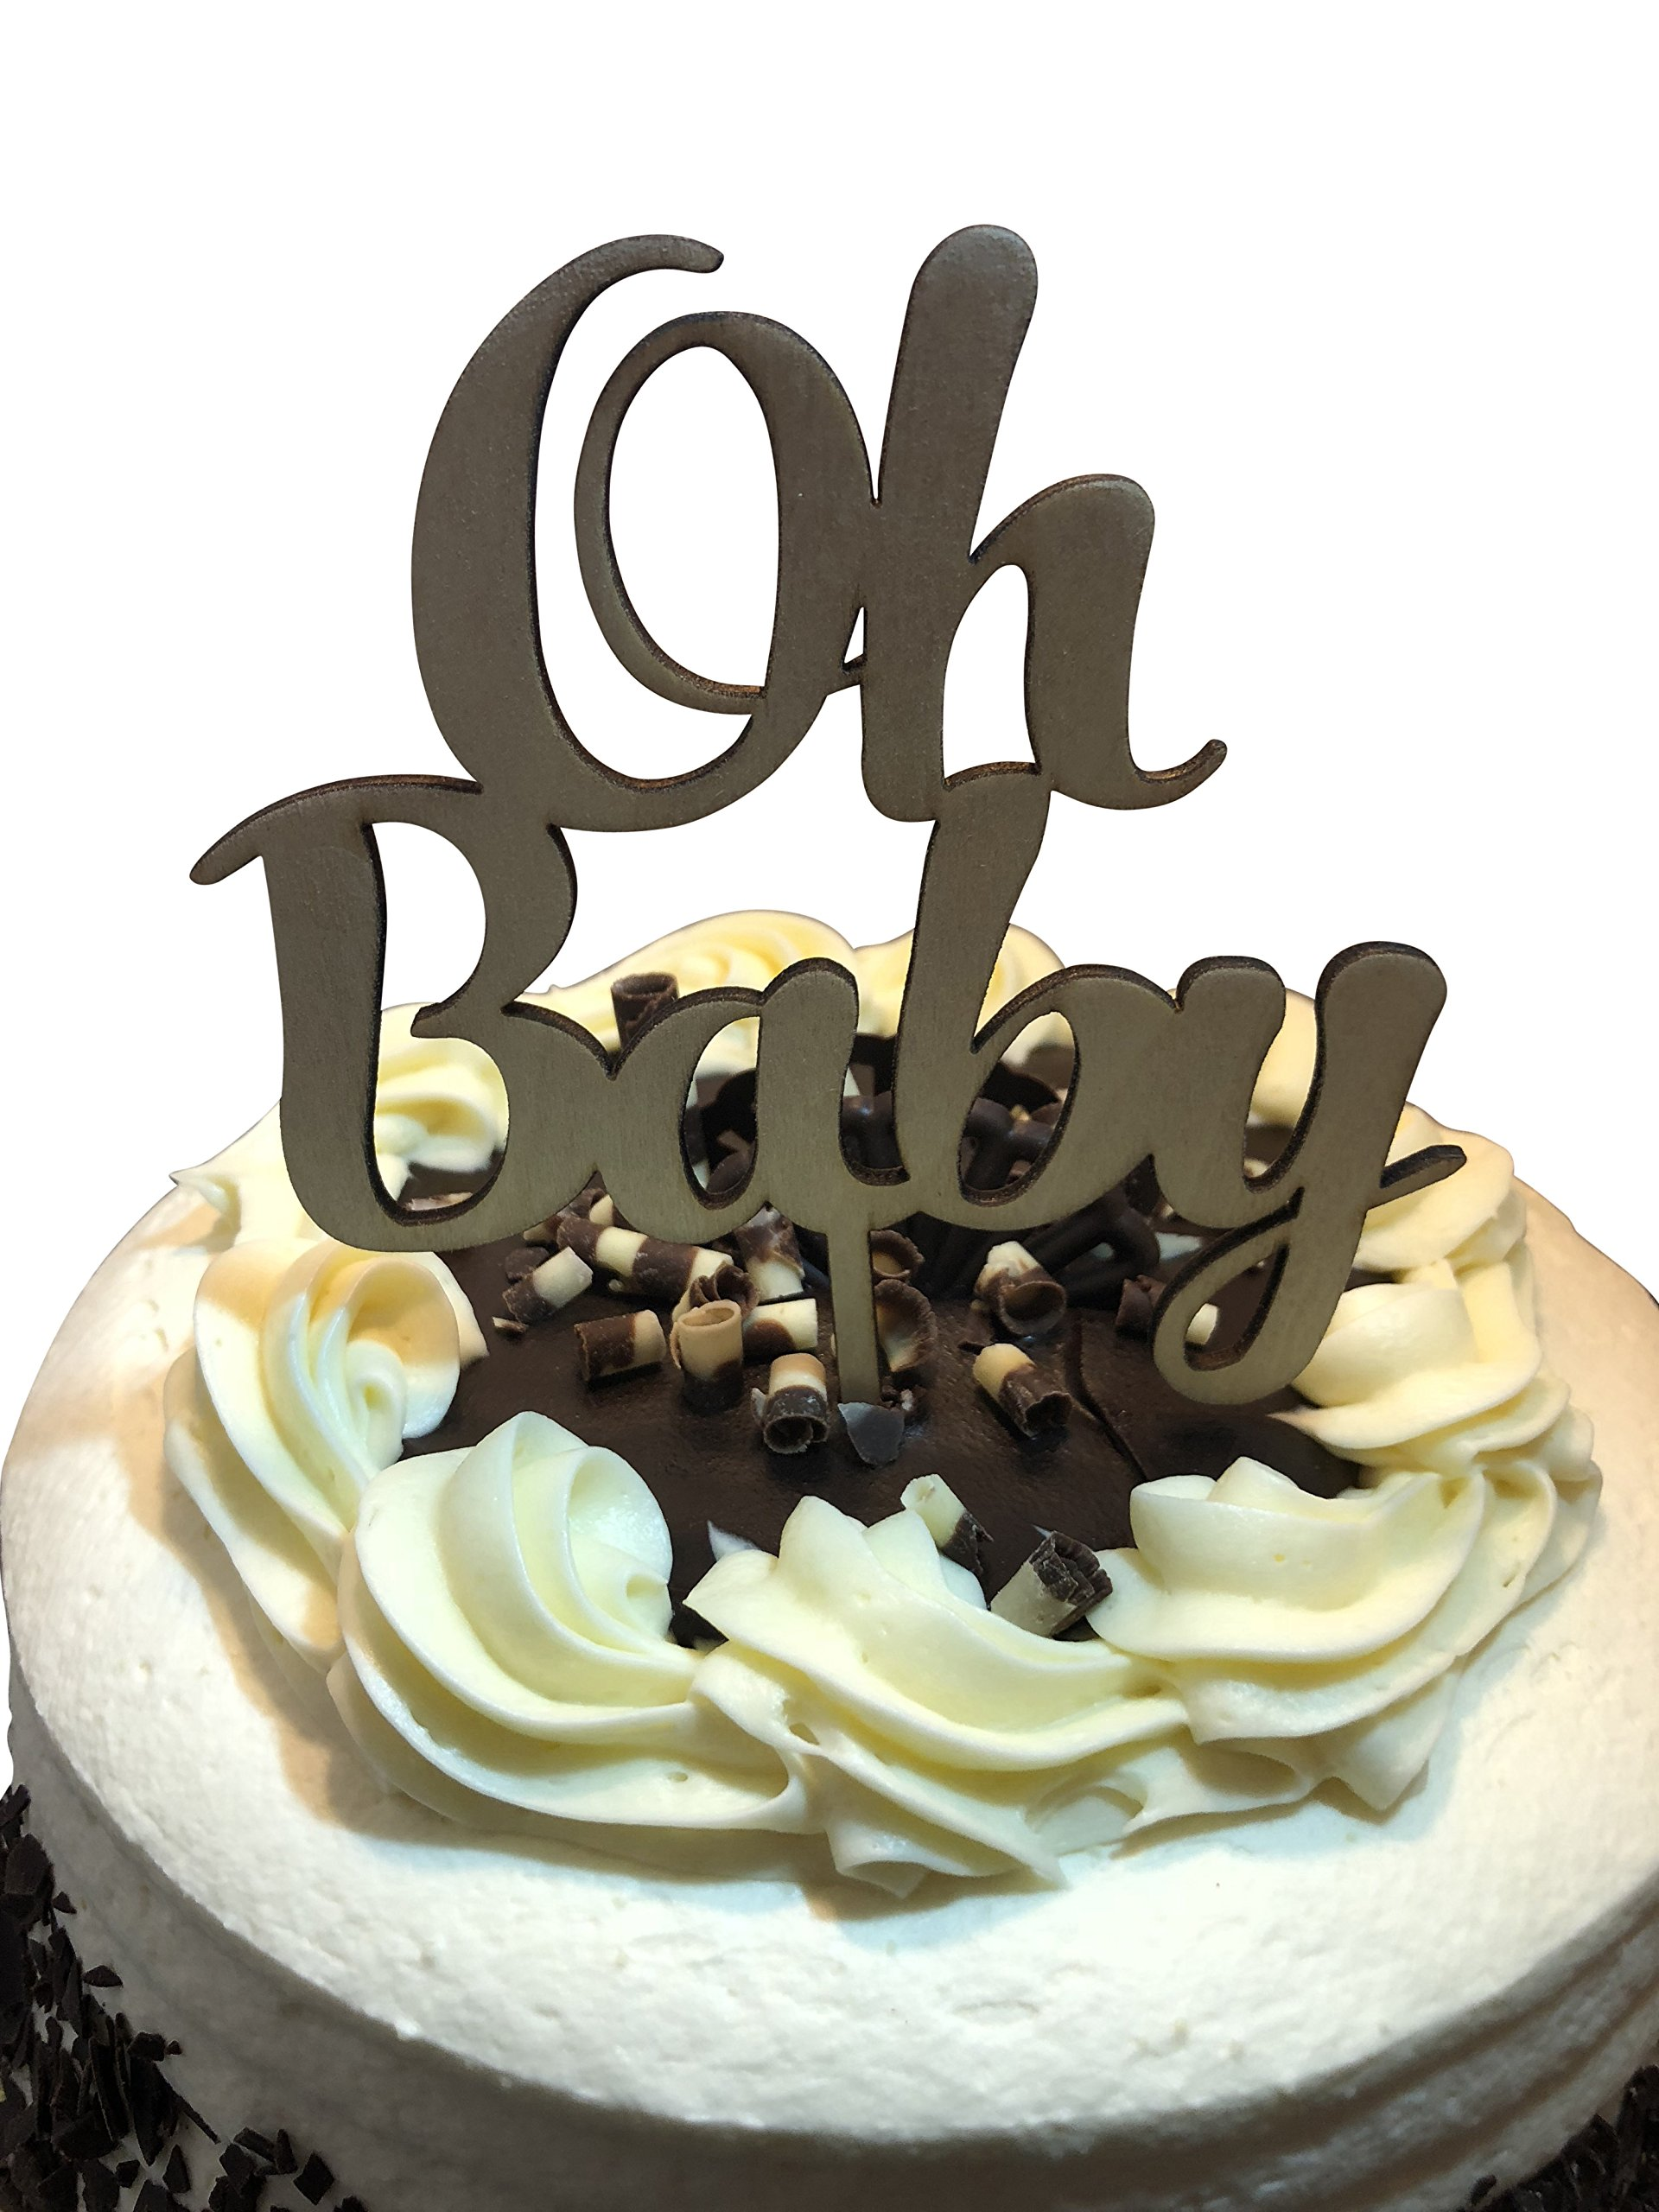 OH BABY Shower Cake Topper - Celebration Cake Decorating Pick Supplies - Wooden Decor Party Cake Toppers - Food Safe Boy Girl Decorations by Jolly Jon